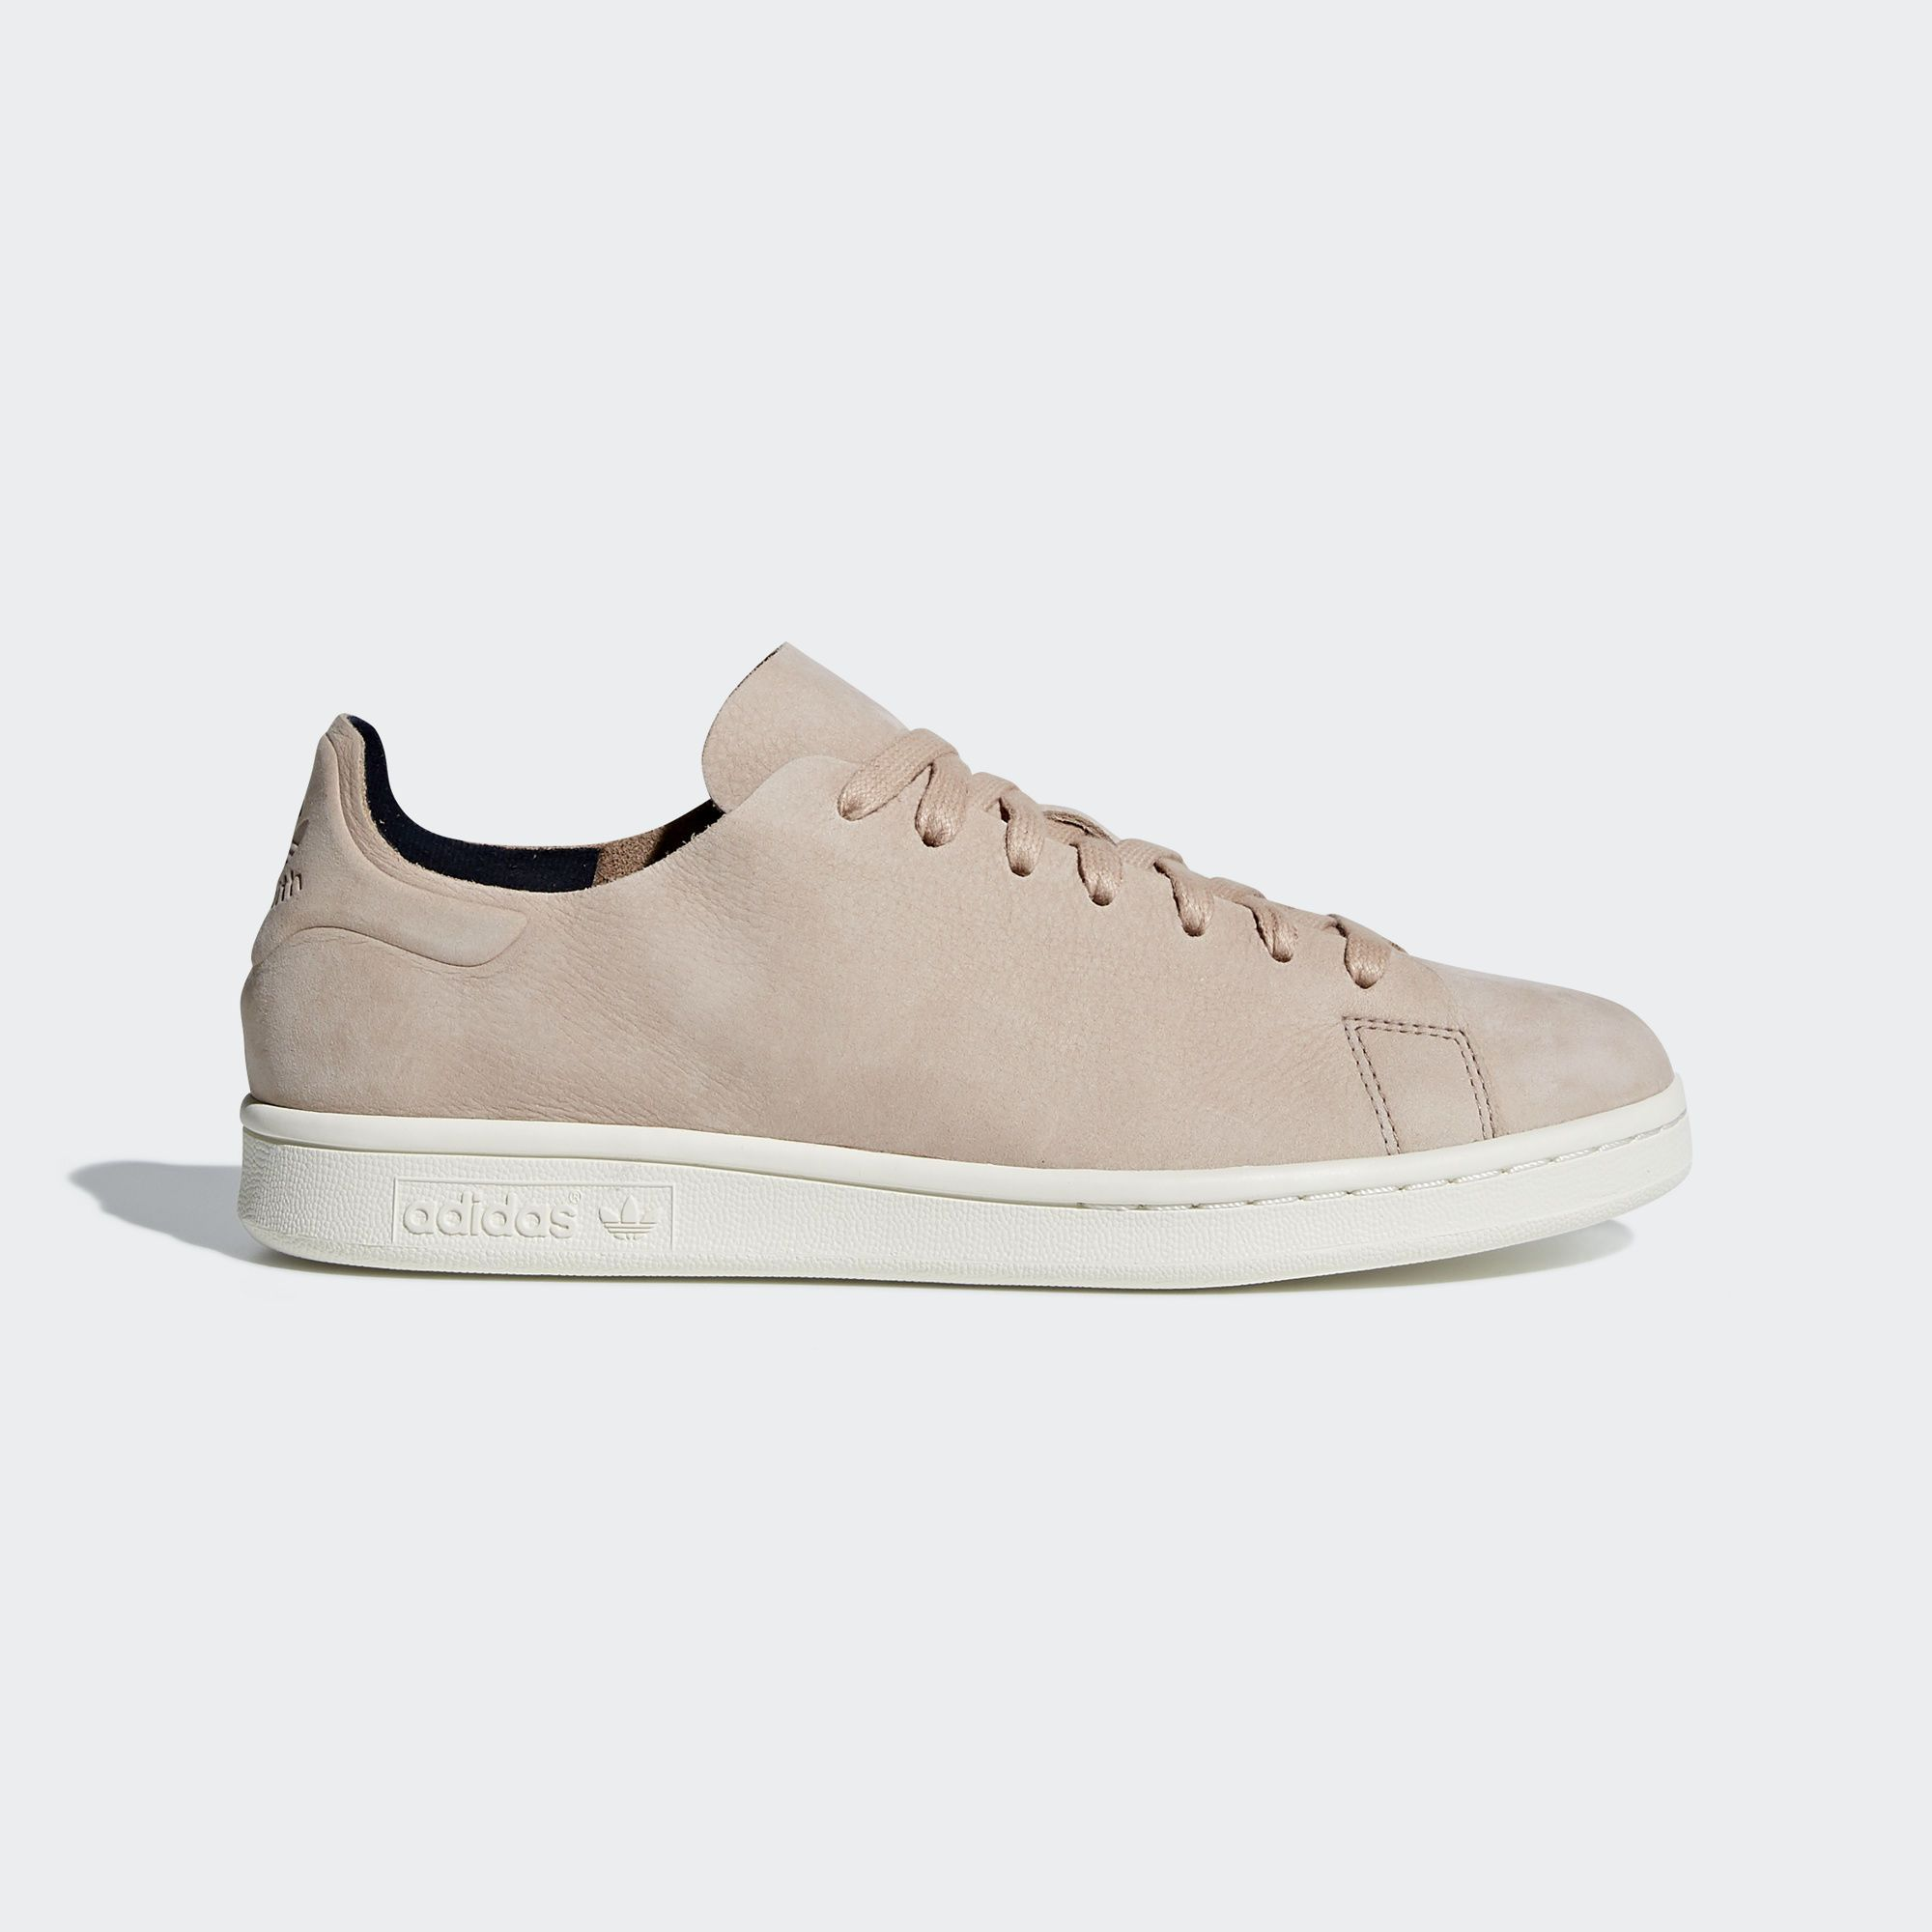 super popular 8256e c2953 Shop for Stan Smith Nuud Shoes - Pink at adidas.co.uk! See